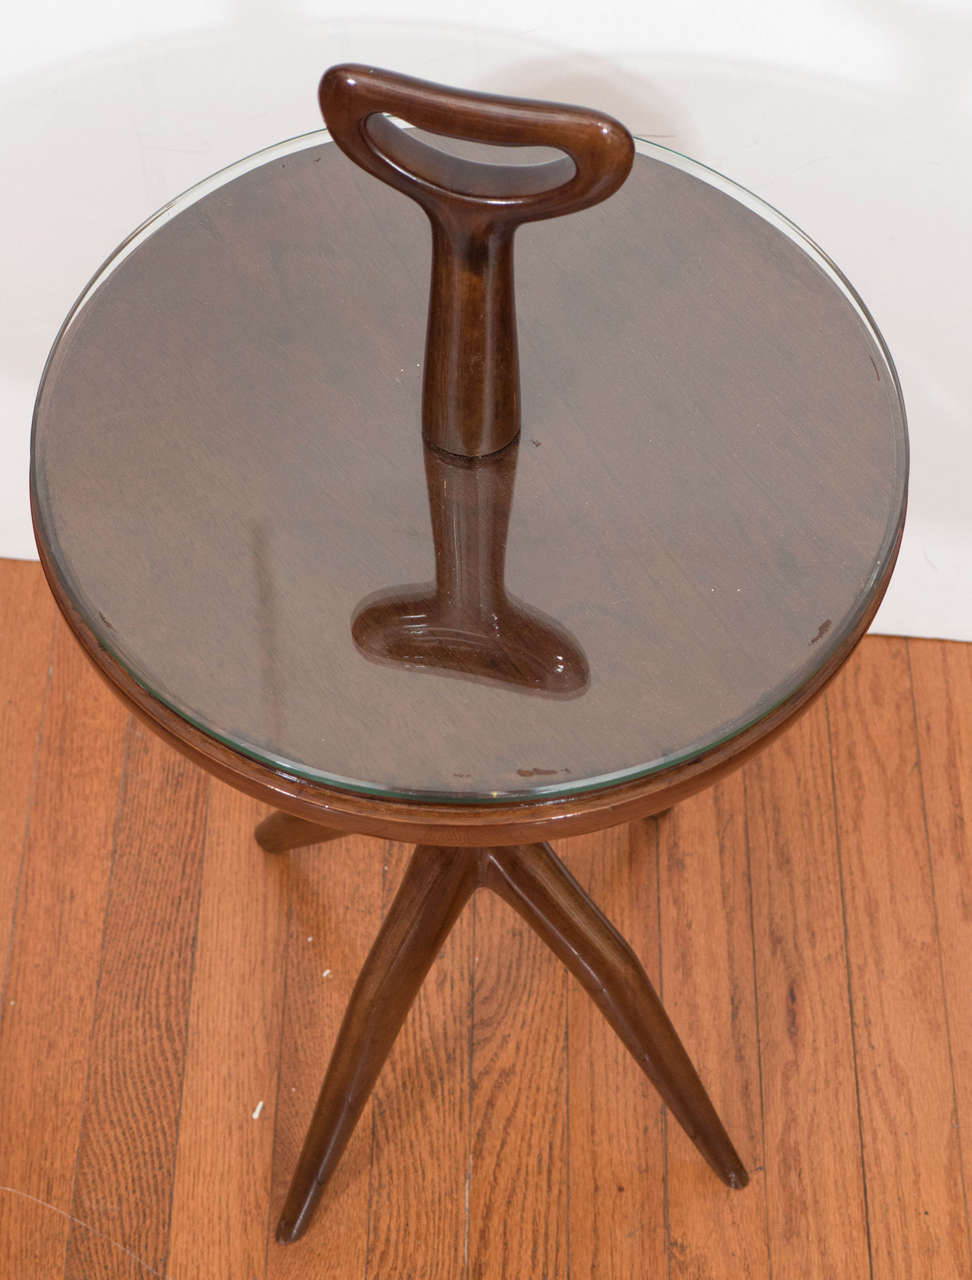 Lacquered Wood Table with Handle In Good Condition For Sale In New York, NY